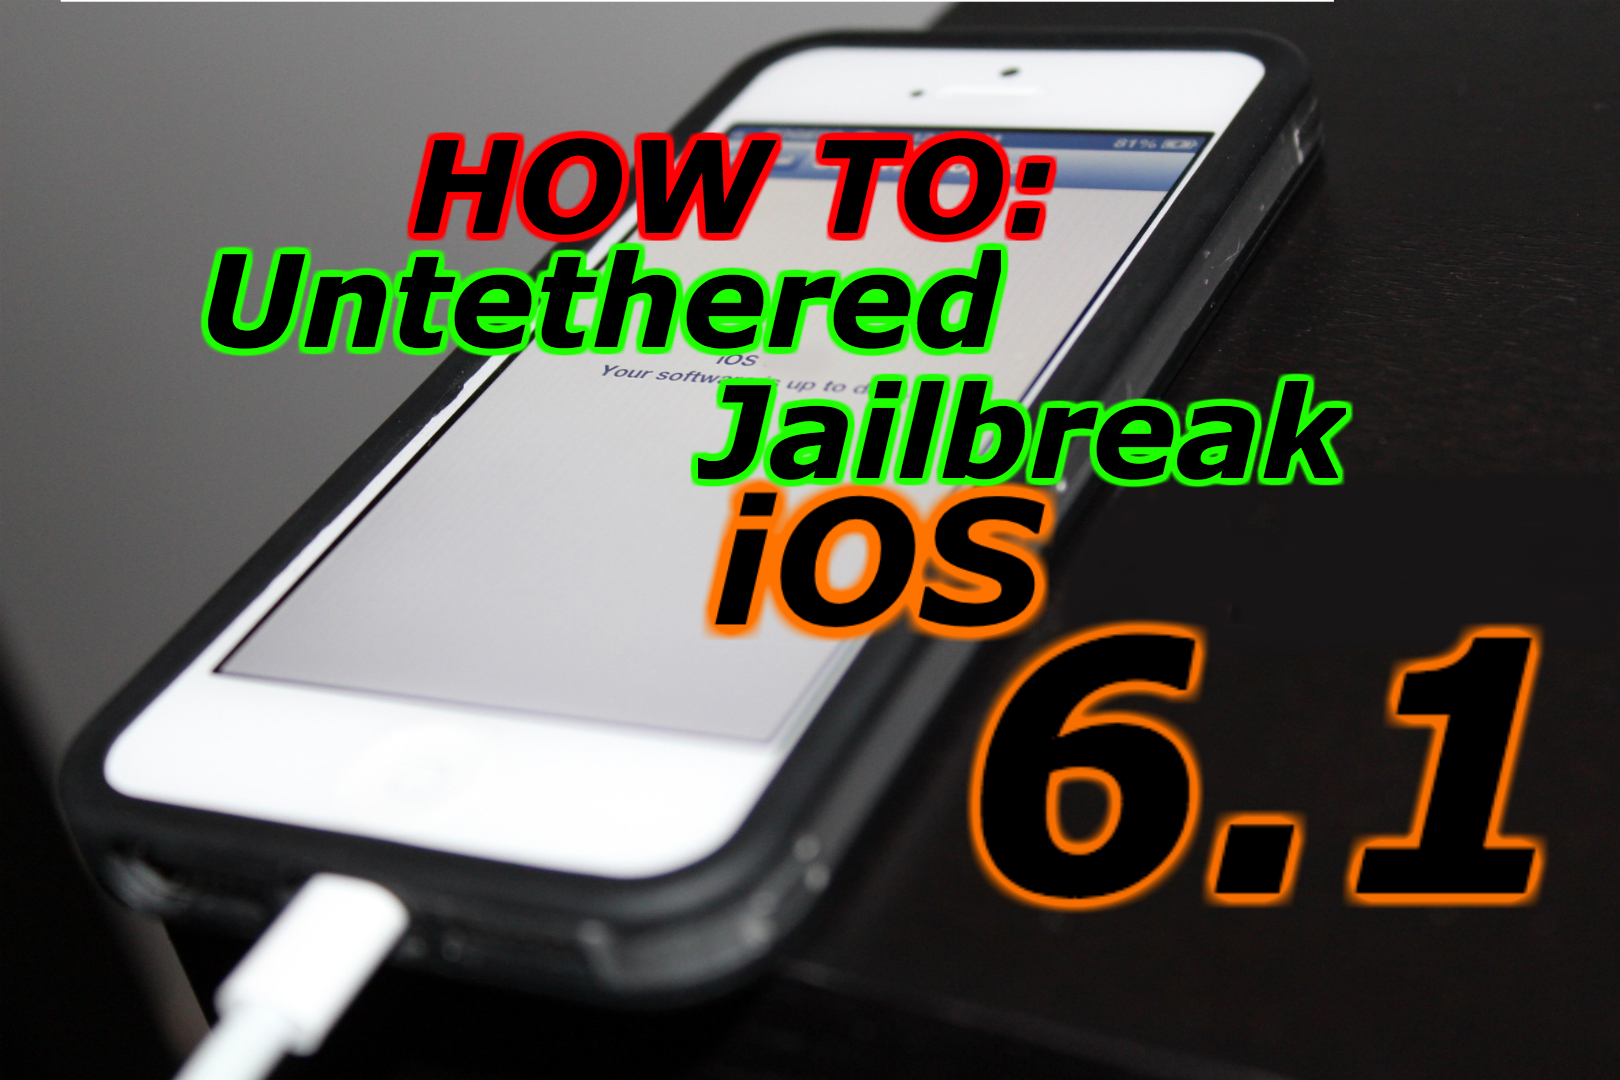 jail break iphone 6 how to untethered jailbreak ios 6 to 6 1 for iphone 2766